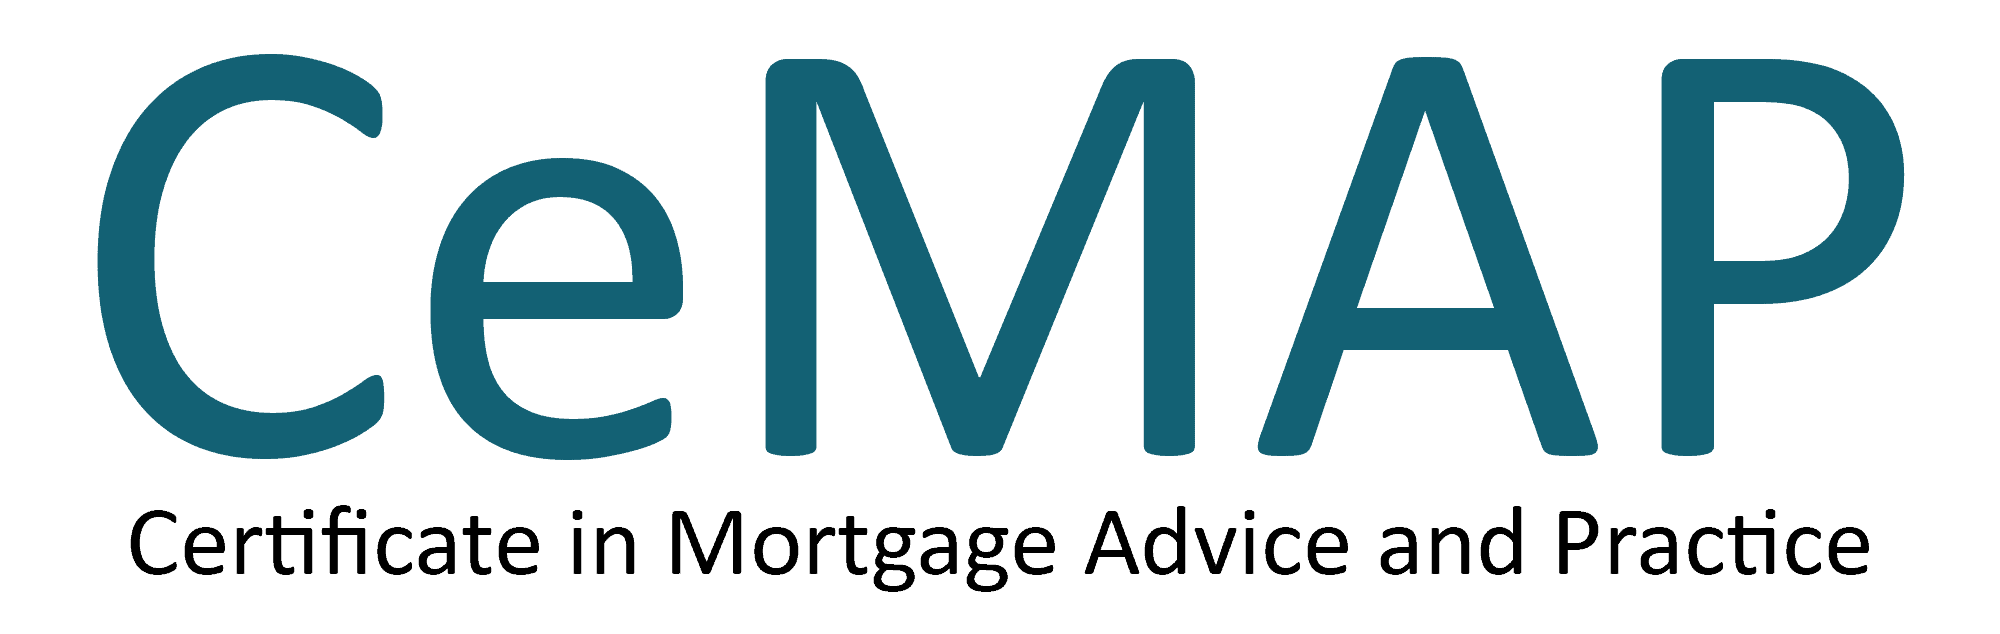 Certificate in Mortgage Advice and Practice (CeMAP) - Mortgage Broker Ipswich